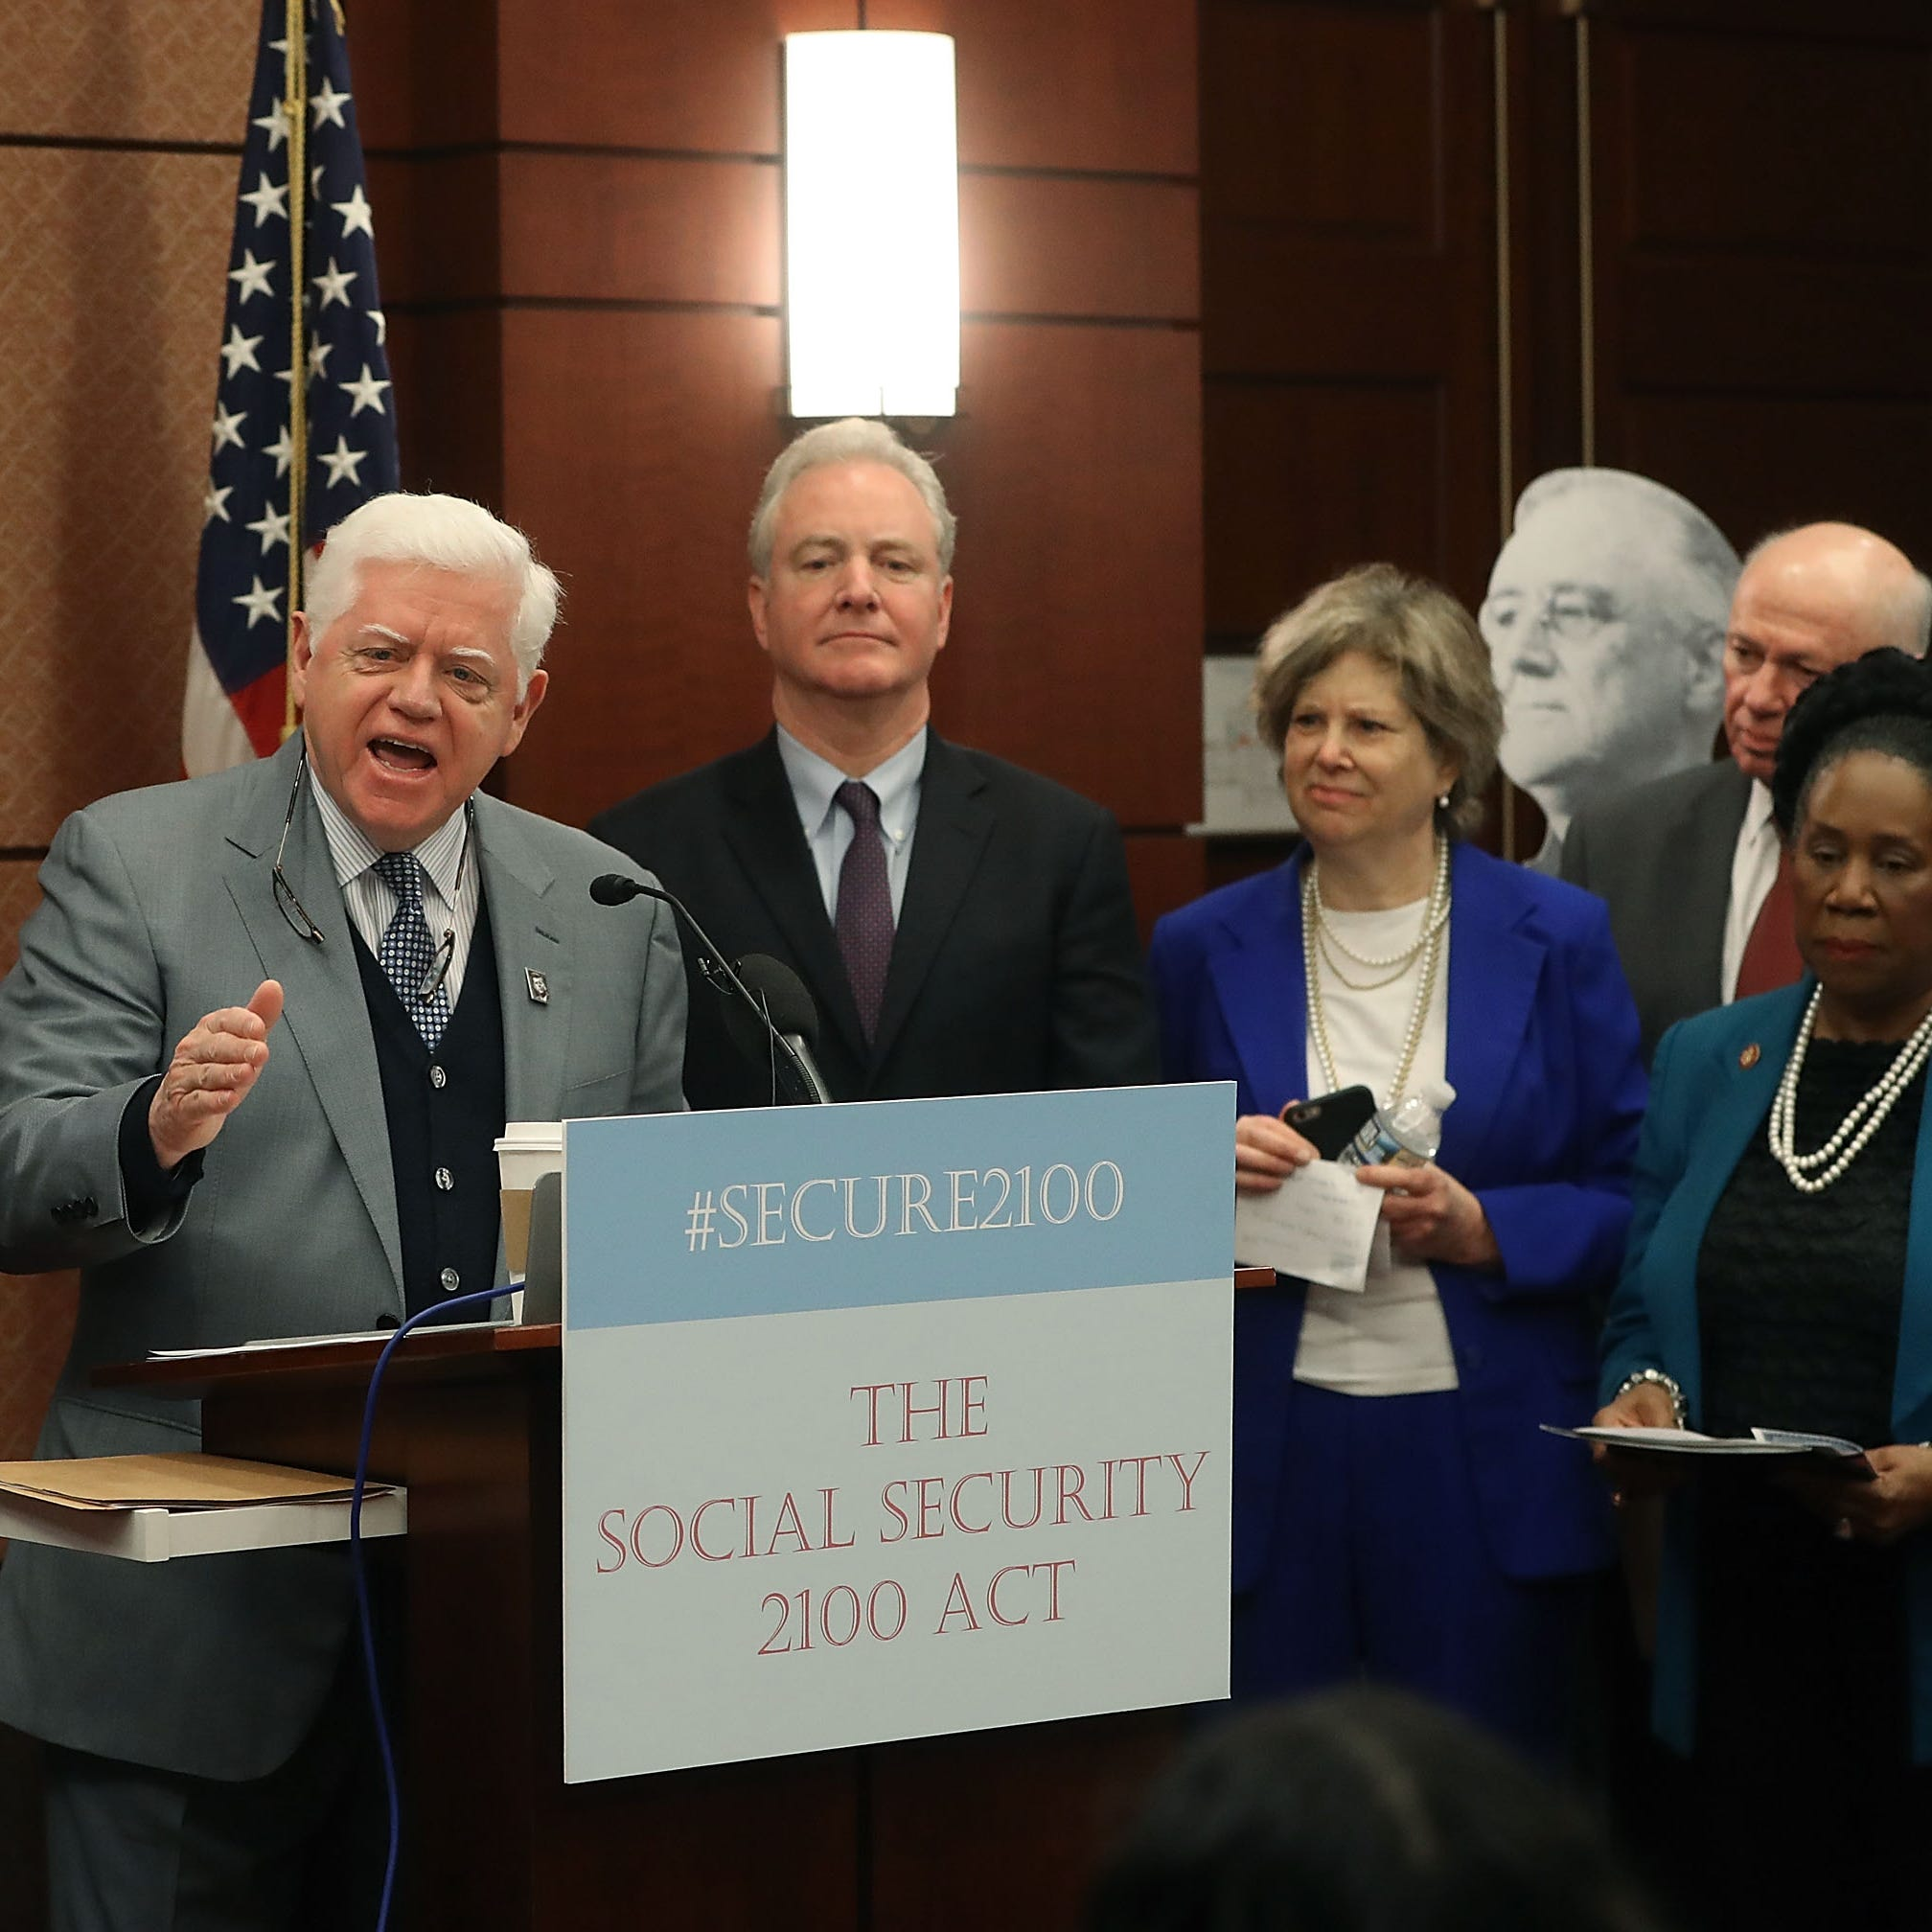 My Social Security 2100 Act shows that Social Security is affordable: Rep. John Larson